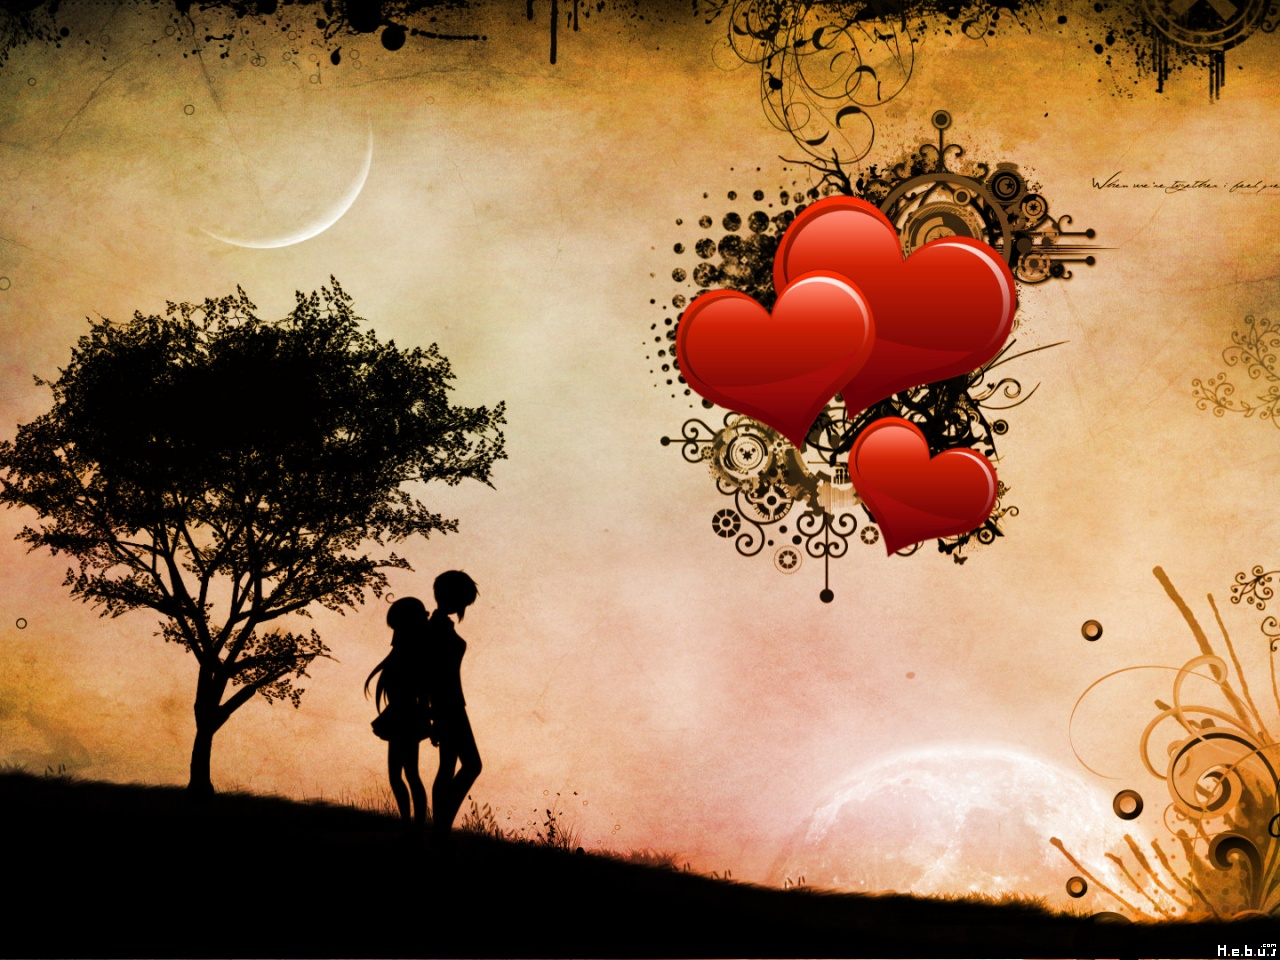 3D Love HD Wallpaper Free Download | Photos Galleries